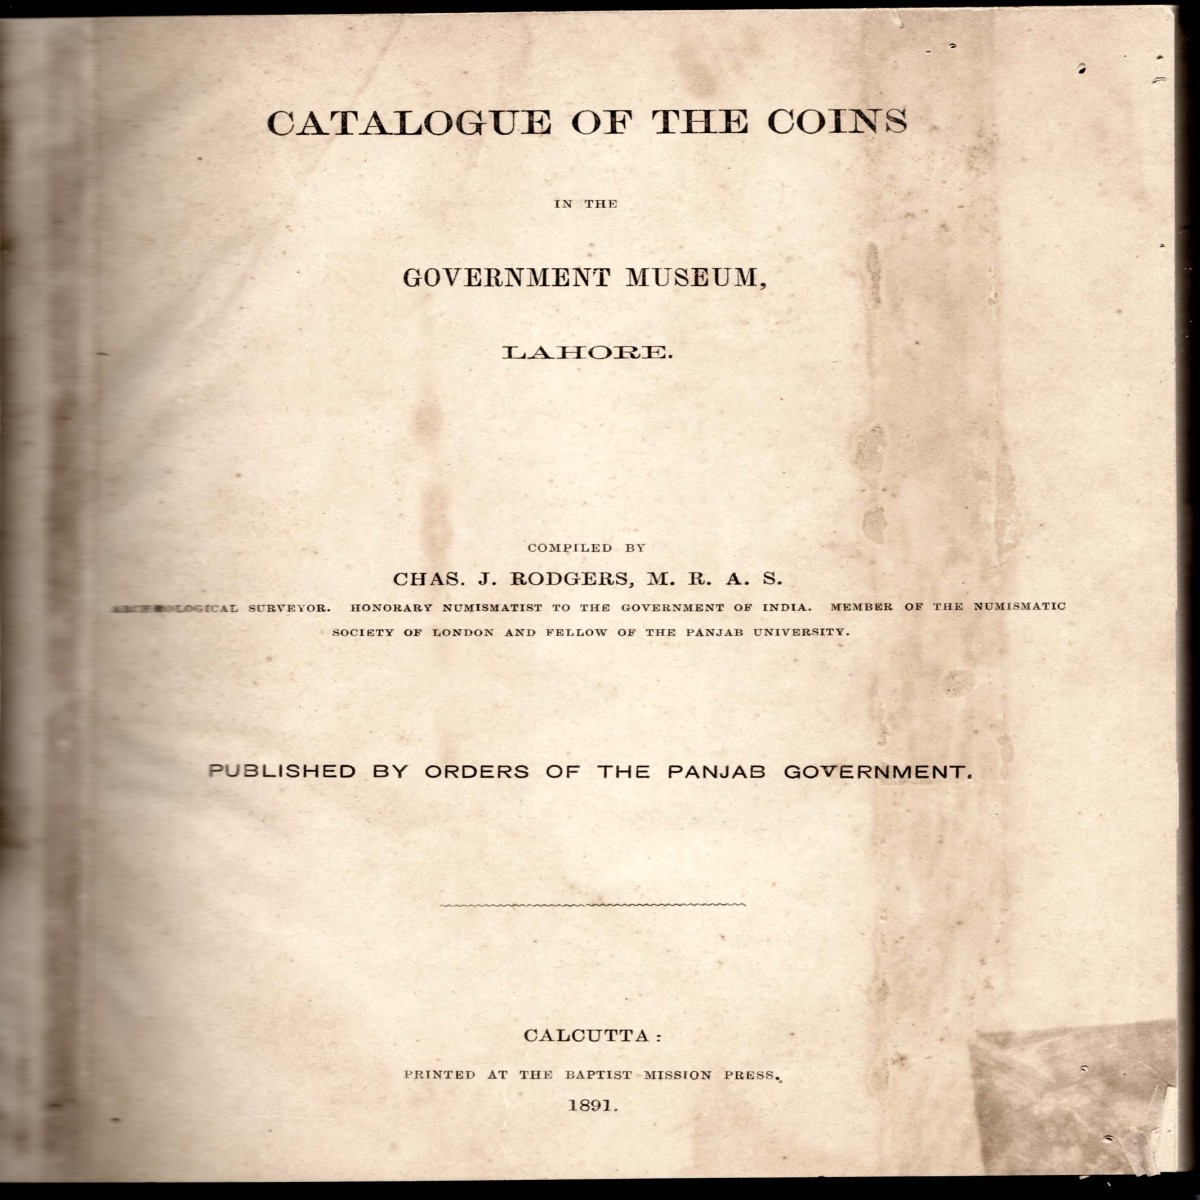 Catalogue Of The Coins in the Government Museum Lahore